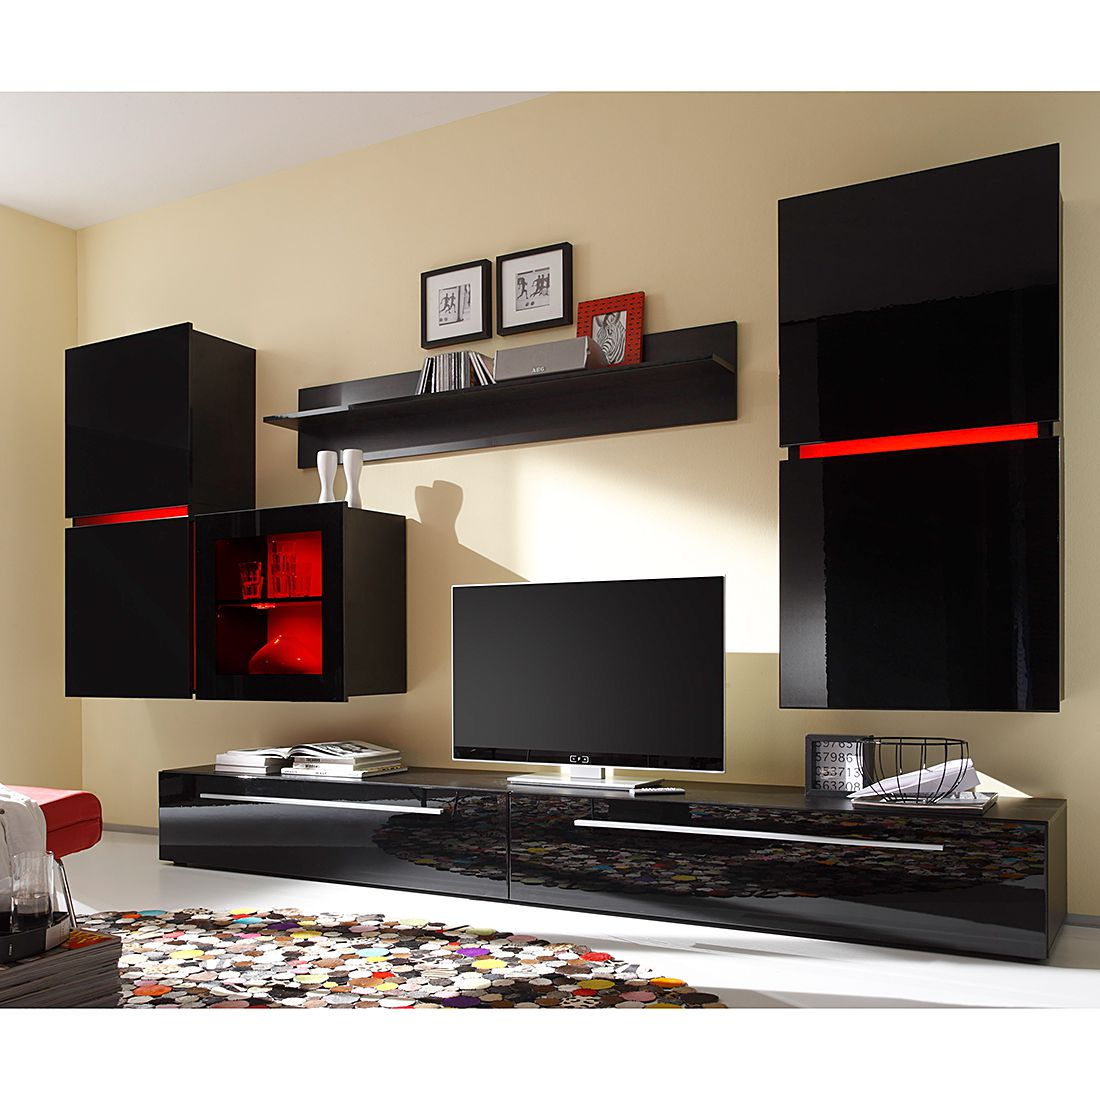 high tv italienische mobel hochglanz beste bildideen zu hause design. Black Bedroom Furniture Sets. Home Design Ideas